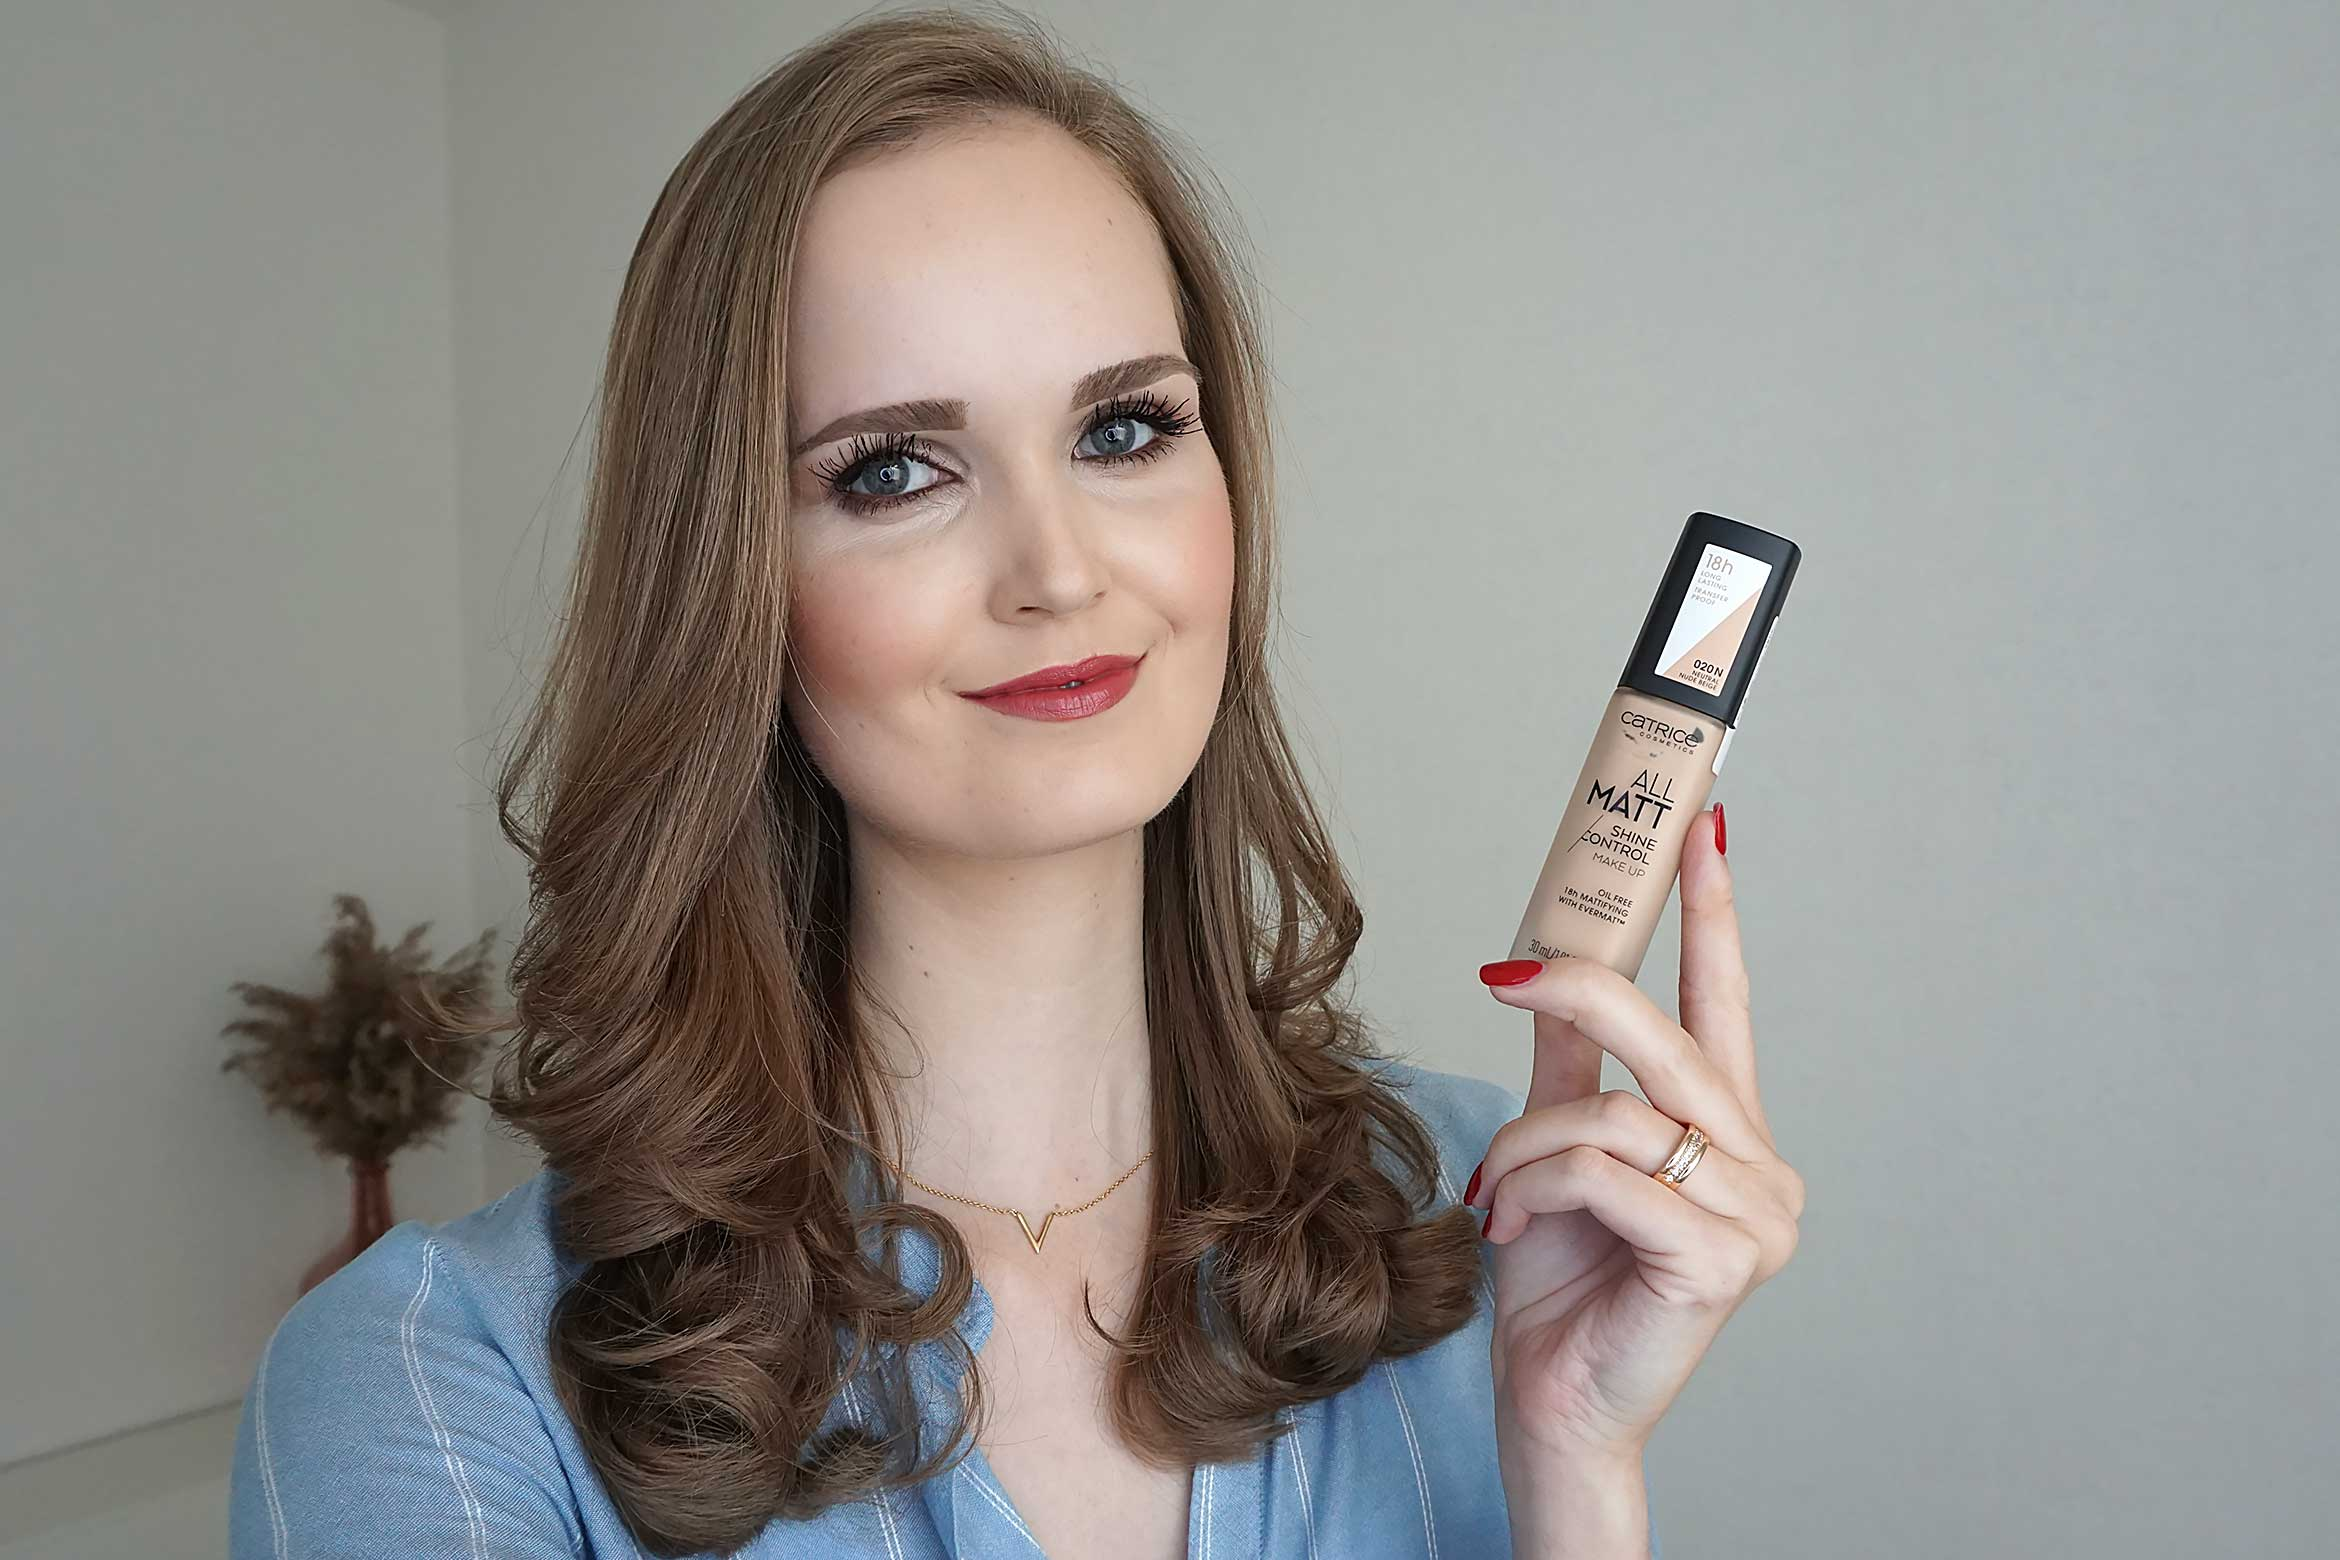 CATRICE all matt shine control make up swatch 020 neutral nude beige result review